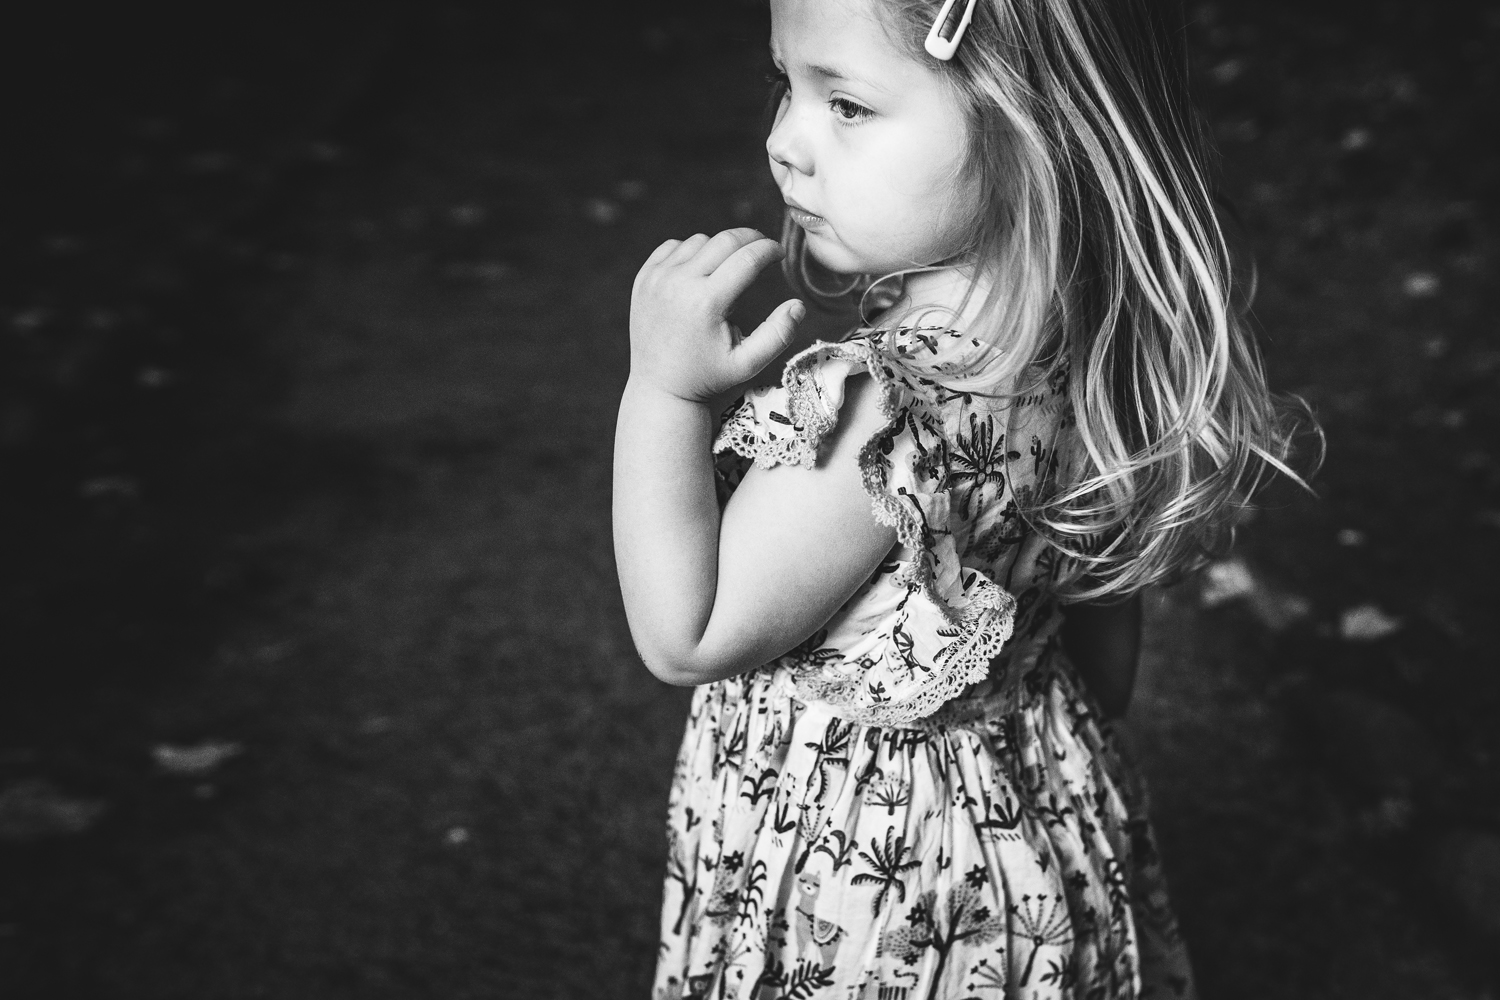 Black and white image of little girl